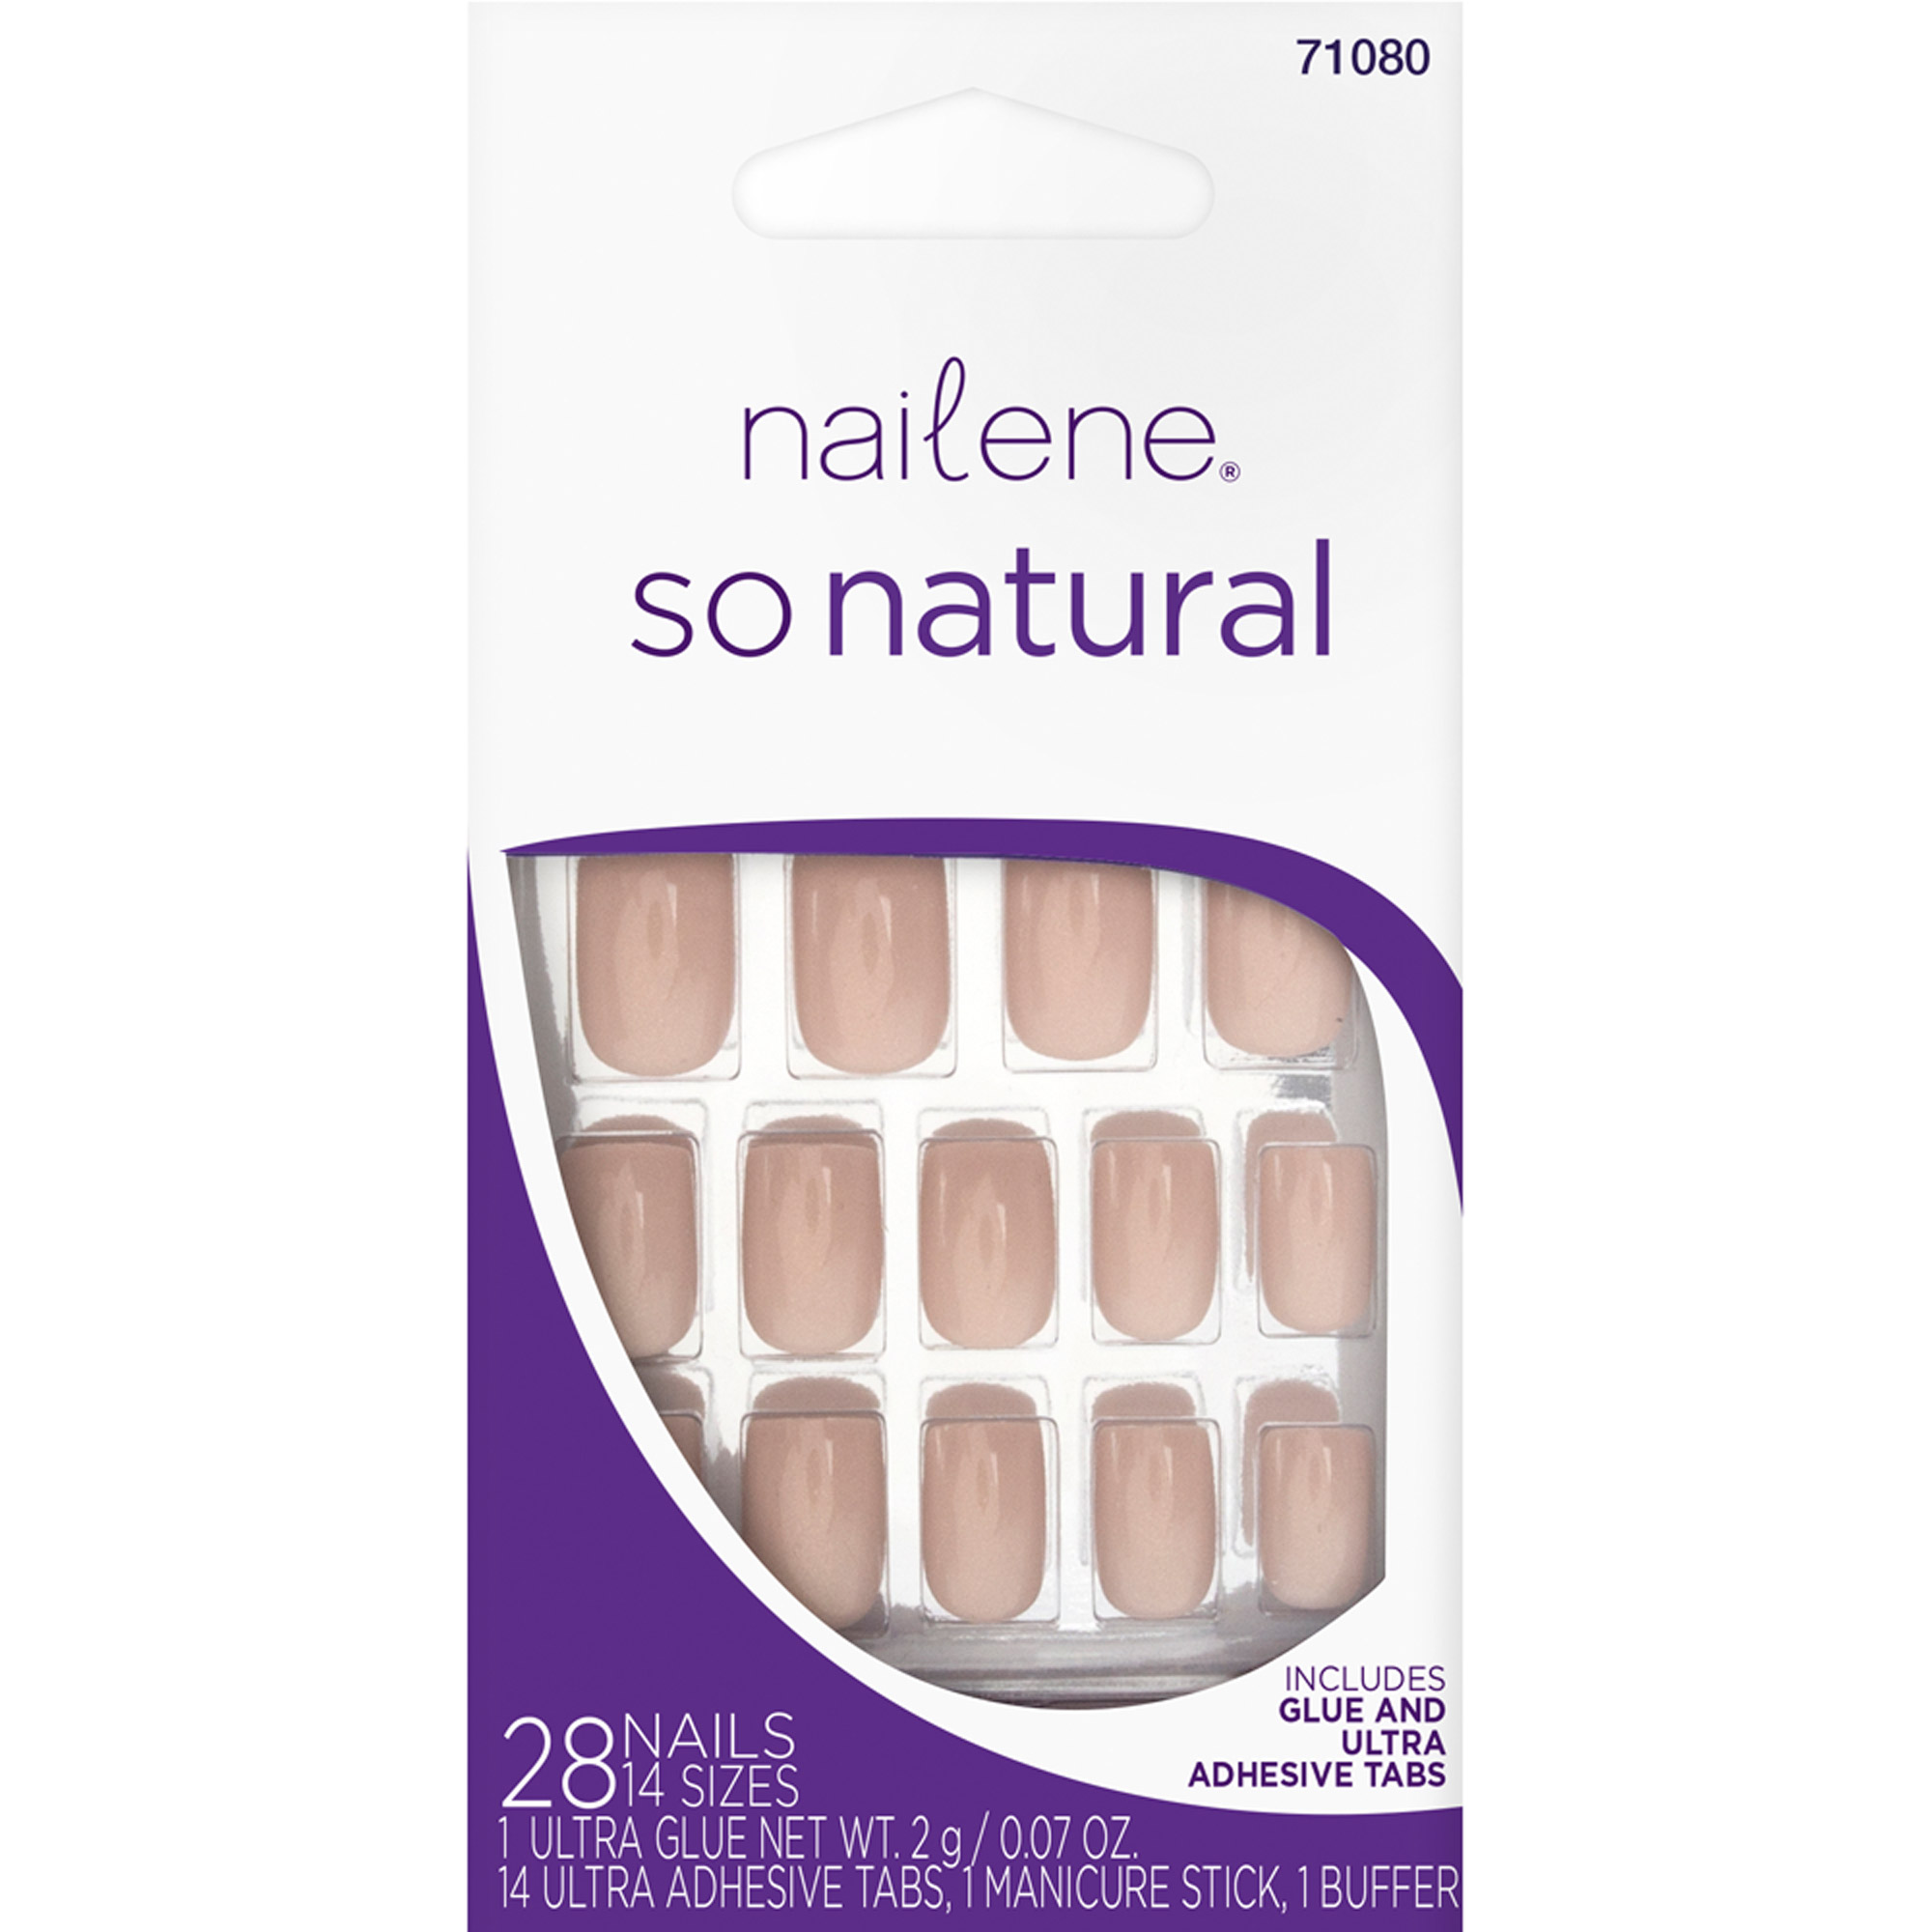 Nailene So Natural Nude Shimmer Glue-On Nails Set, 45 pc